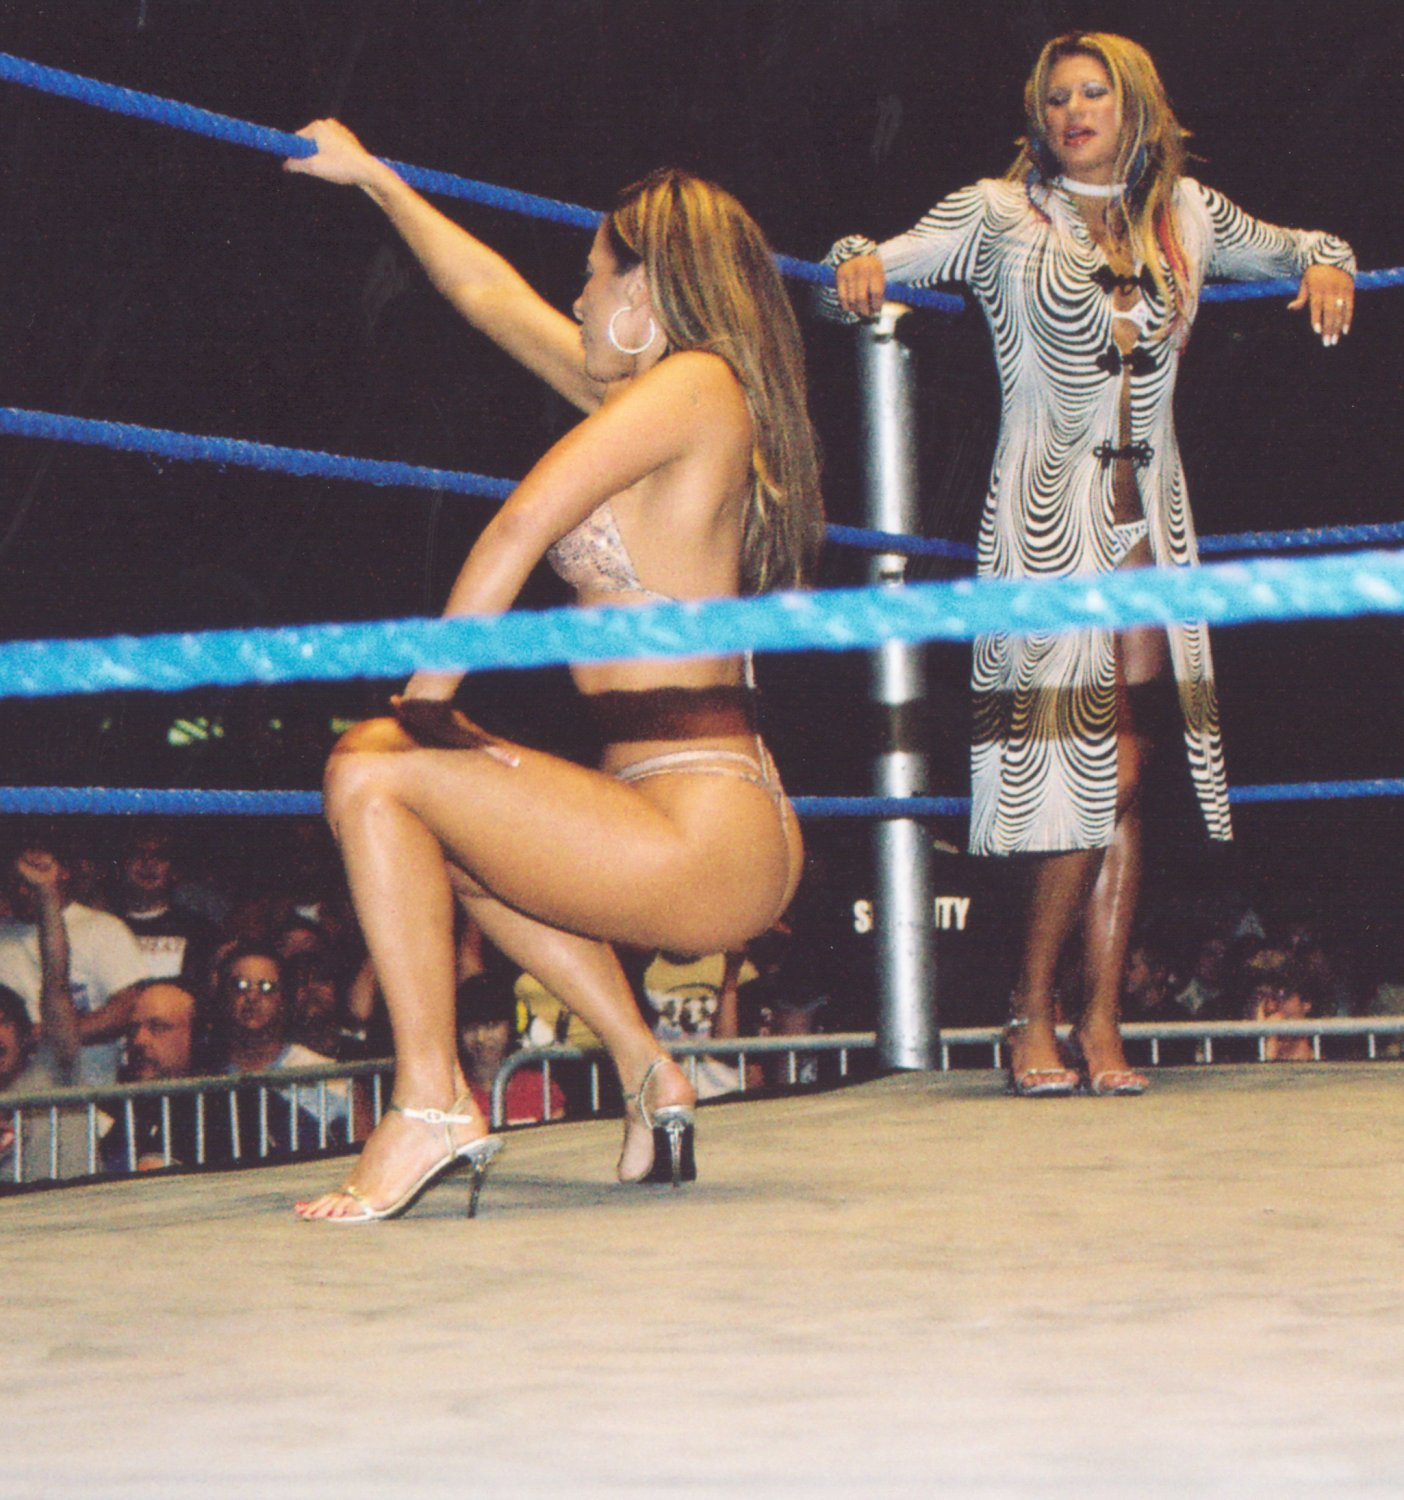 Dawn marie upskirt pictures